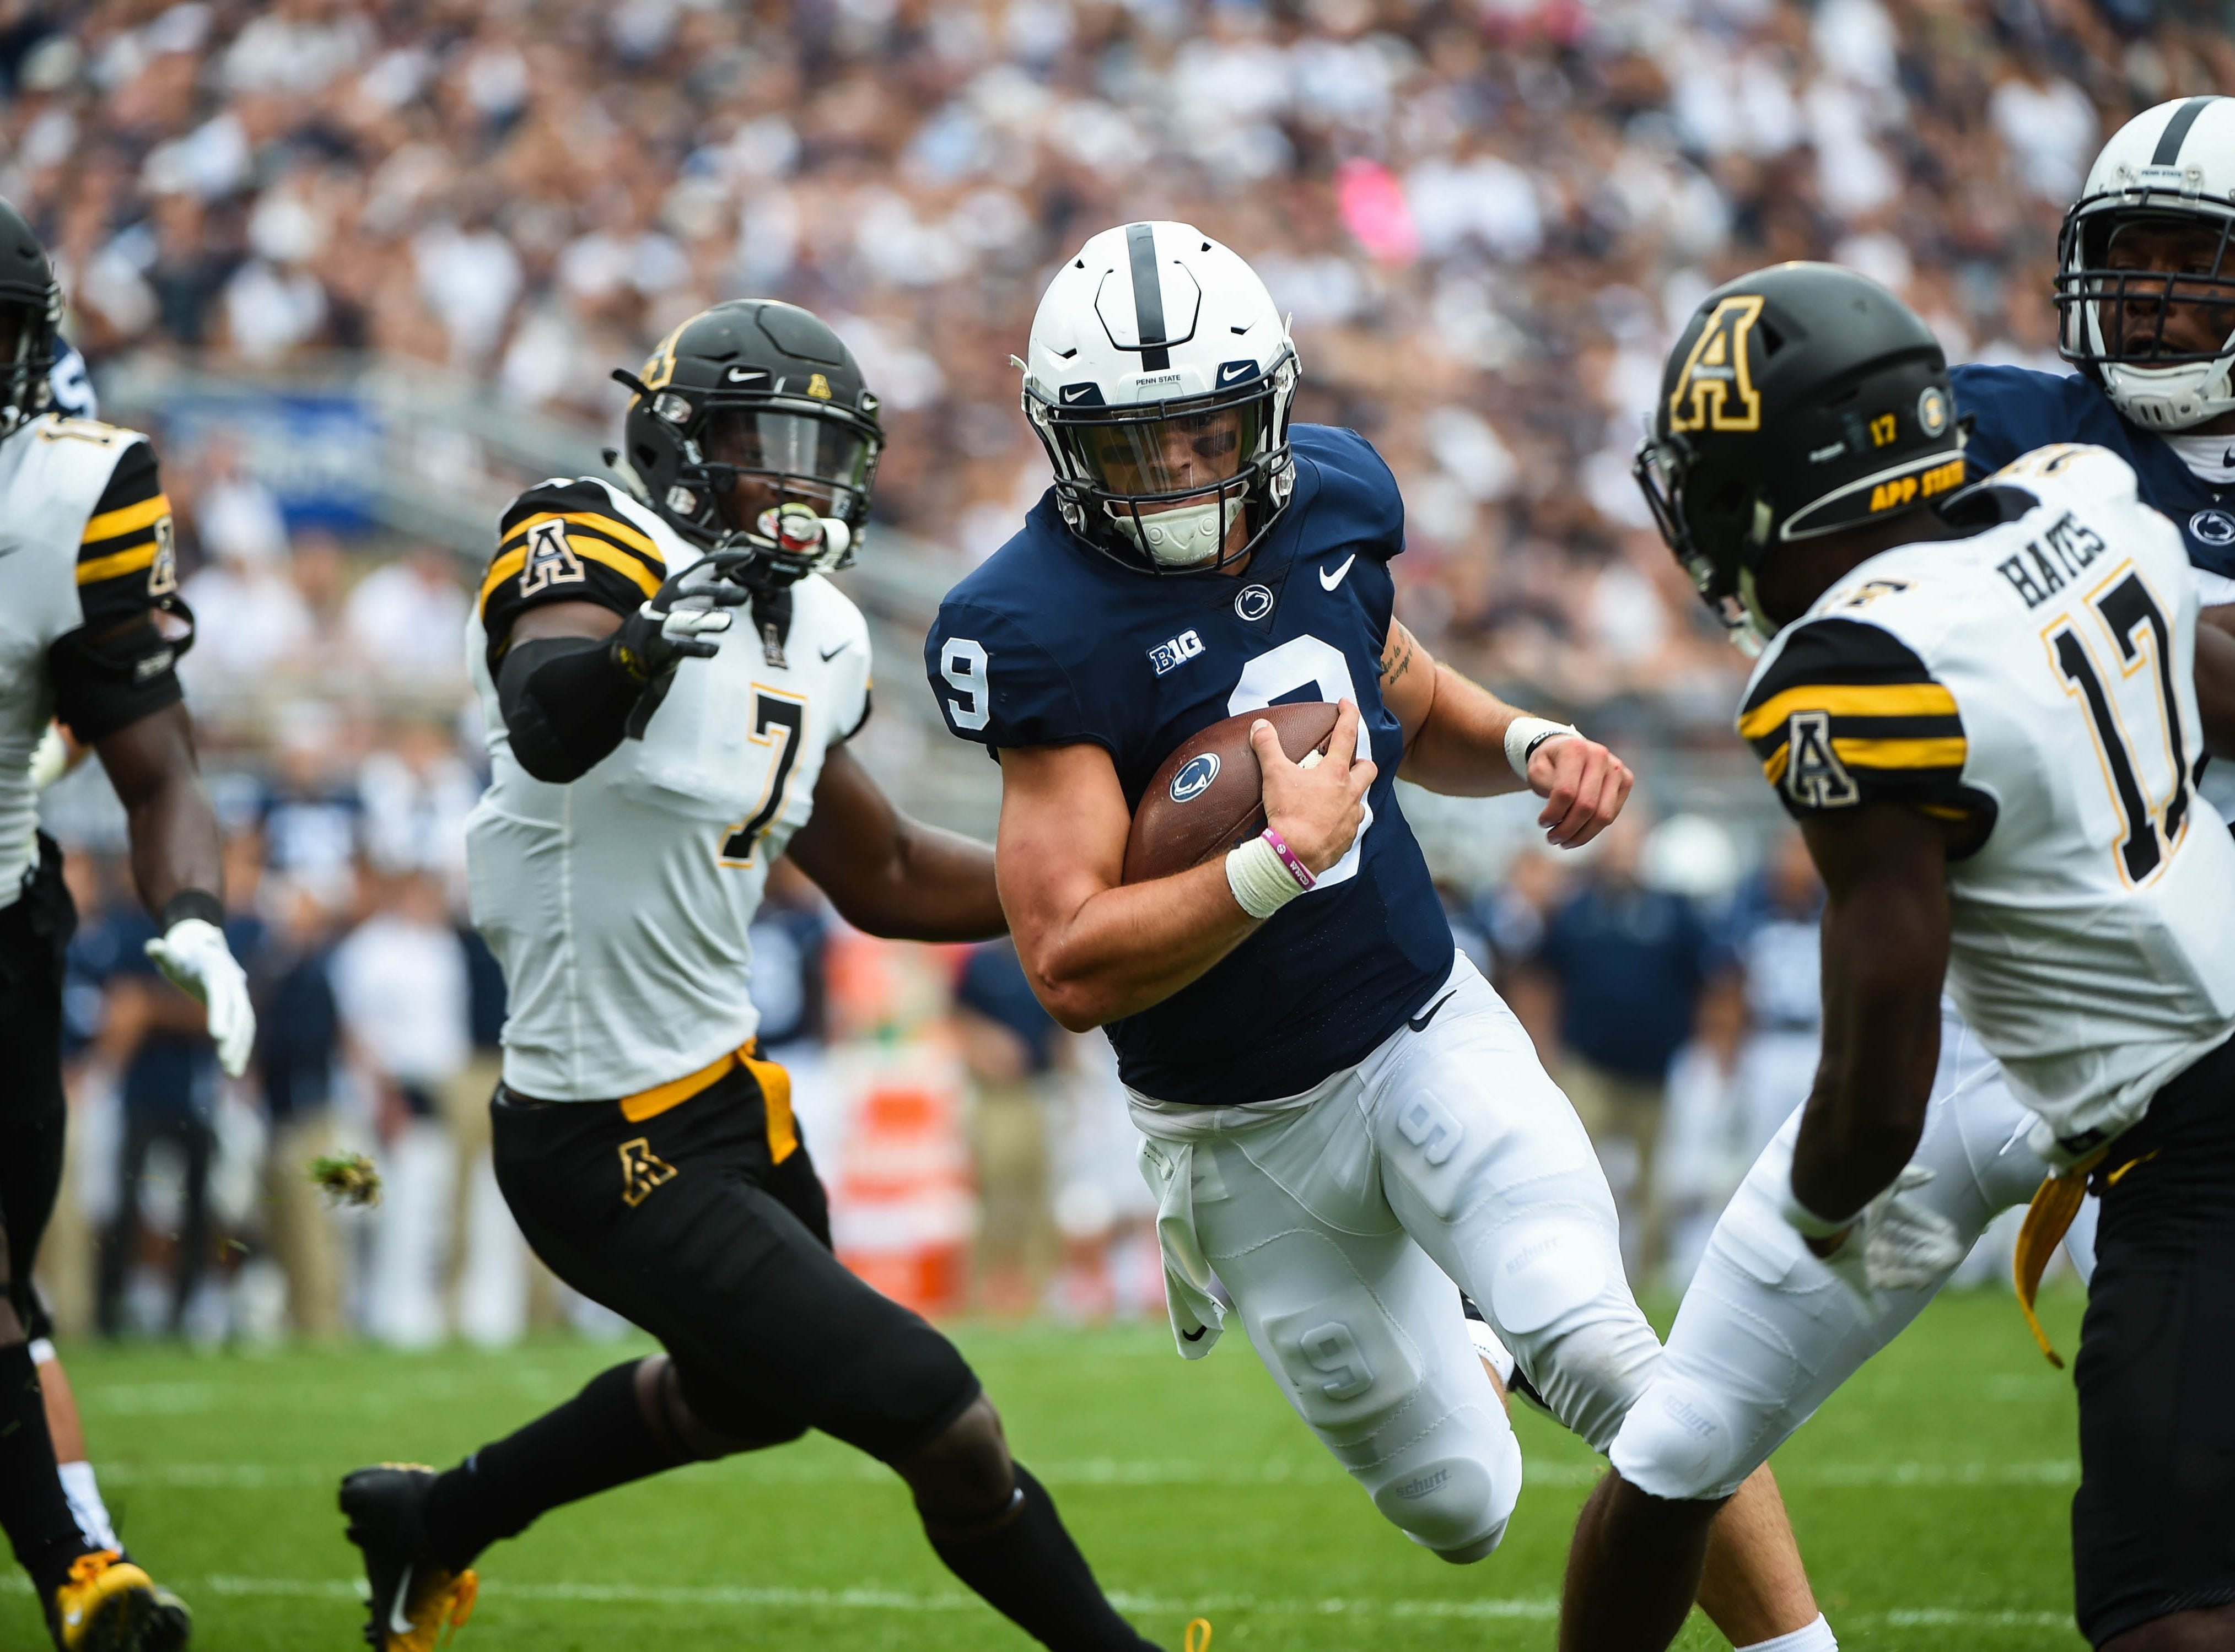 Trace McSorley (9) slips past the Appalachian State defense on September 1, 2018.